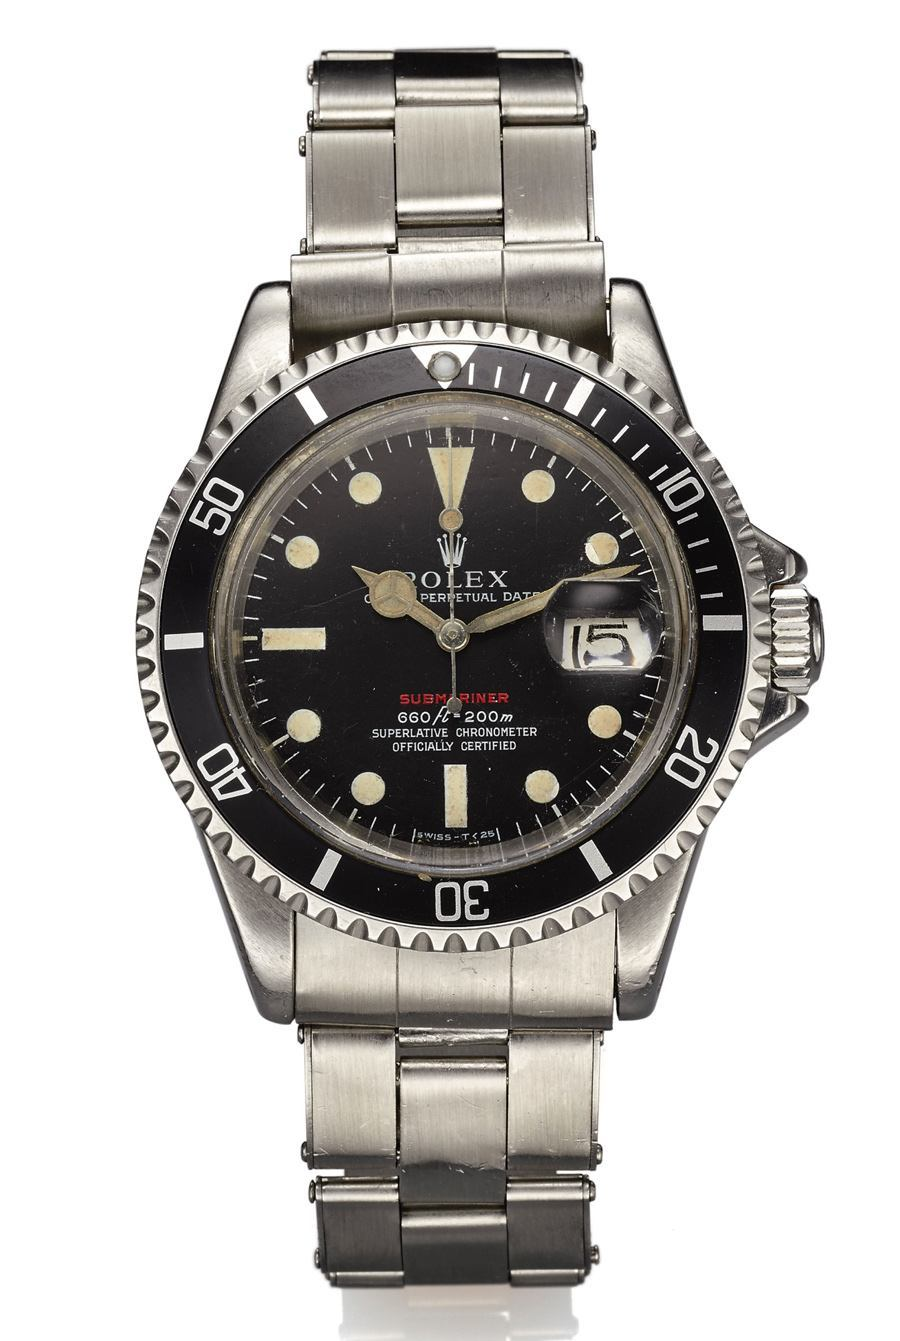 5 sammler tipps zur rolex red submariner. Black Bedroom Furniture Sets. Home Design Ideas